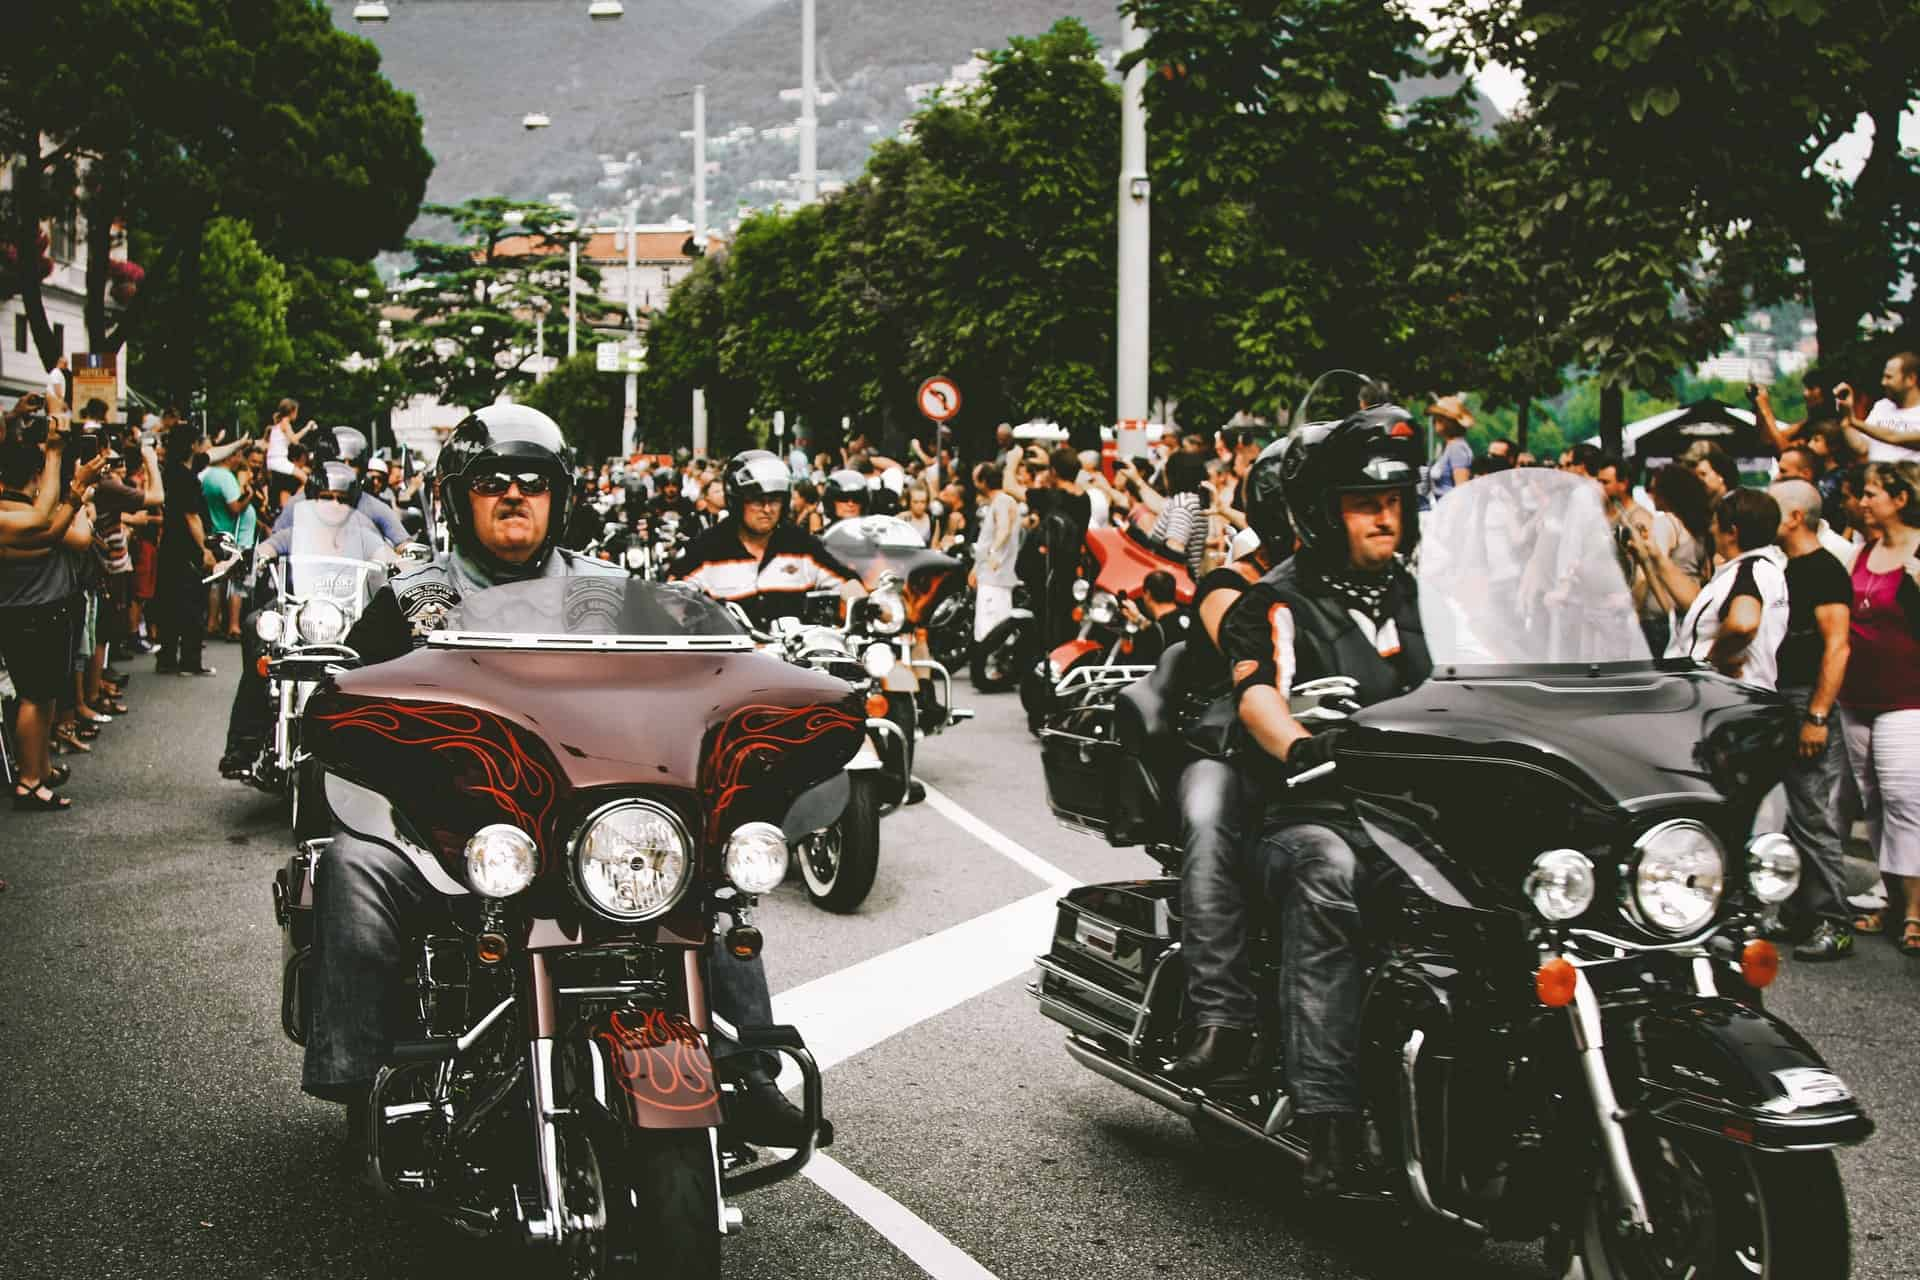 motorcycle riders event